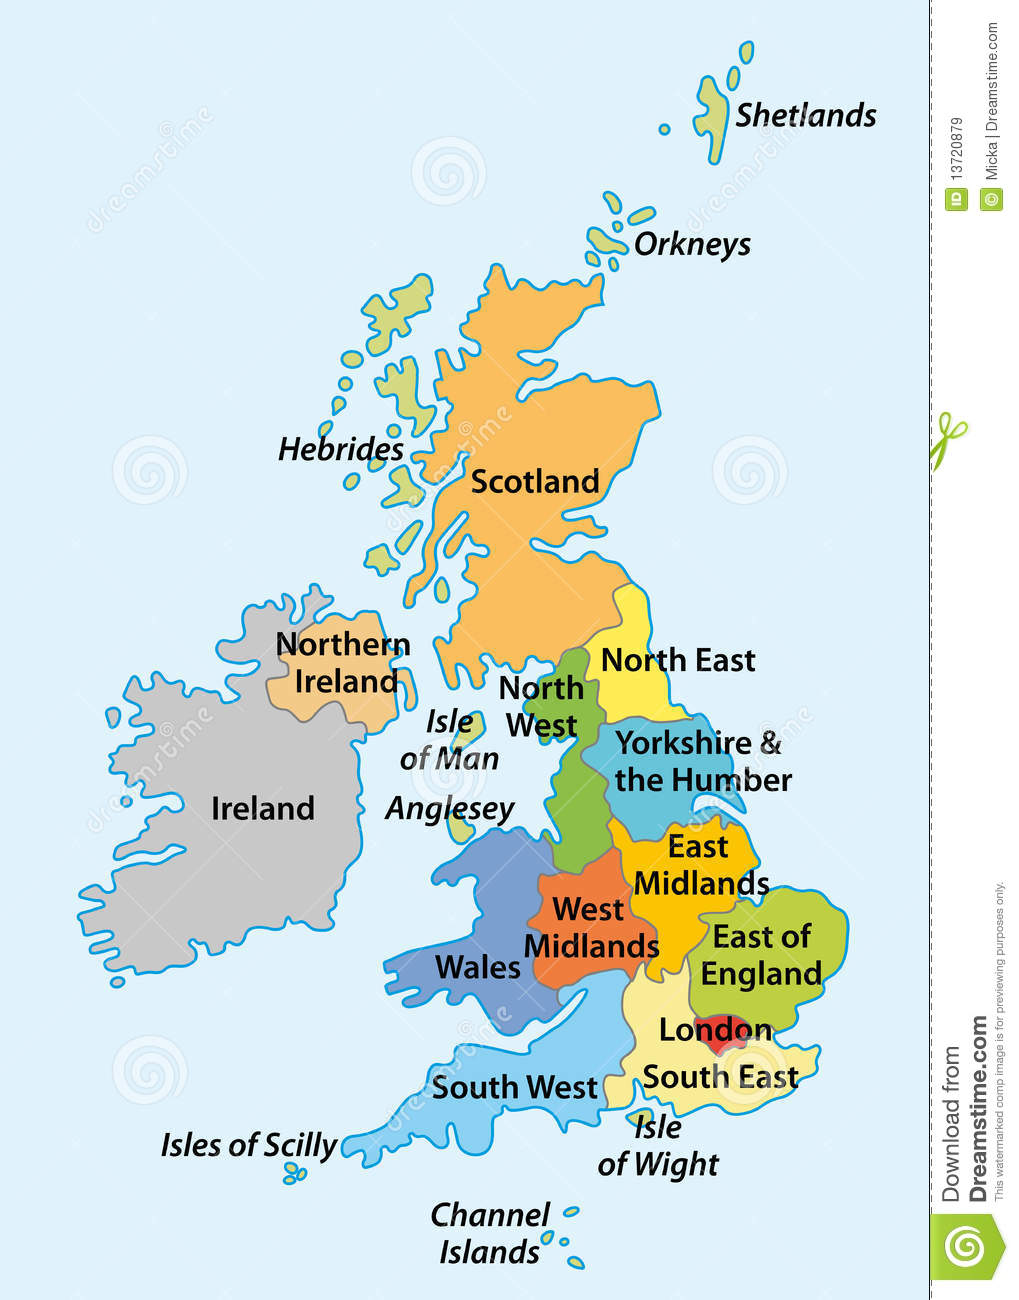 regions of england royalty free stock images image 13720879